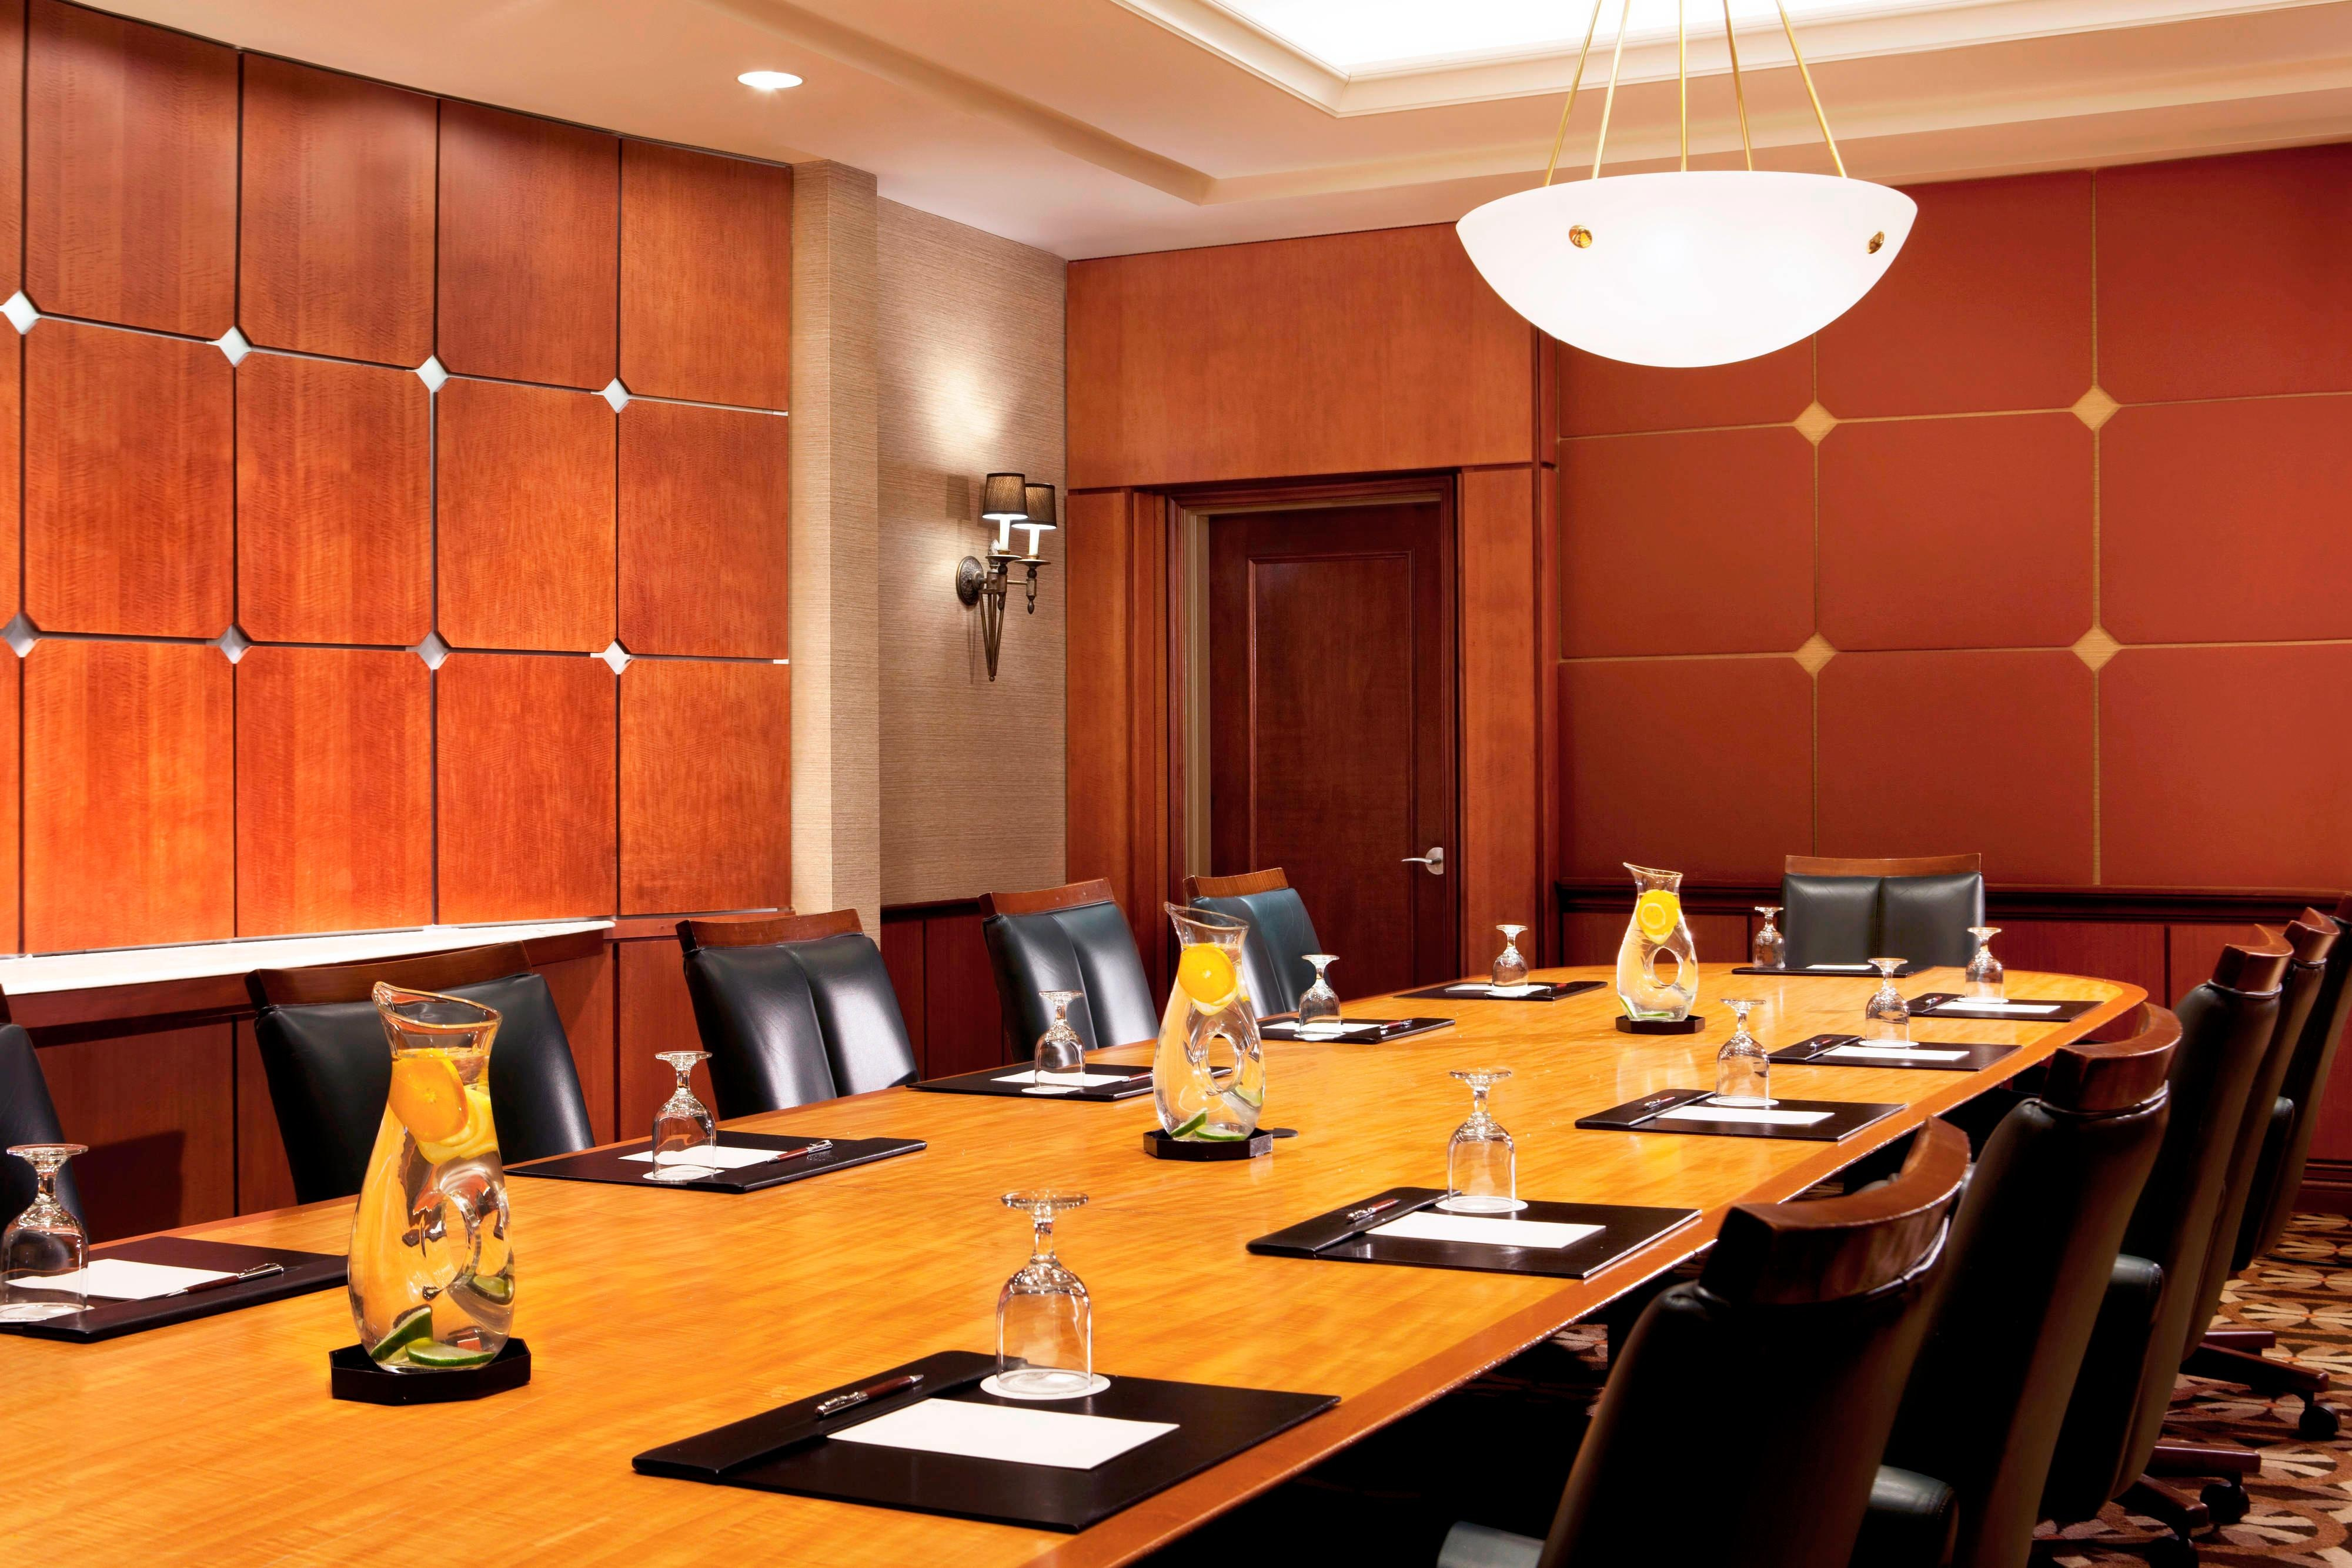 States Boardroom